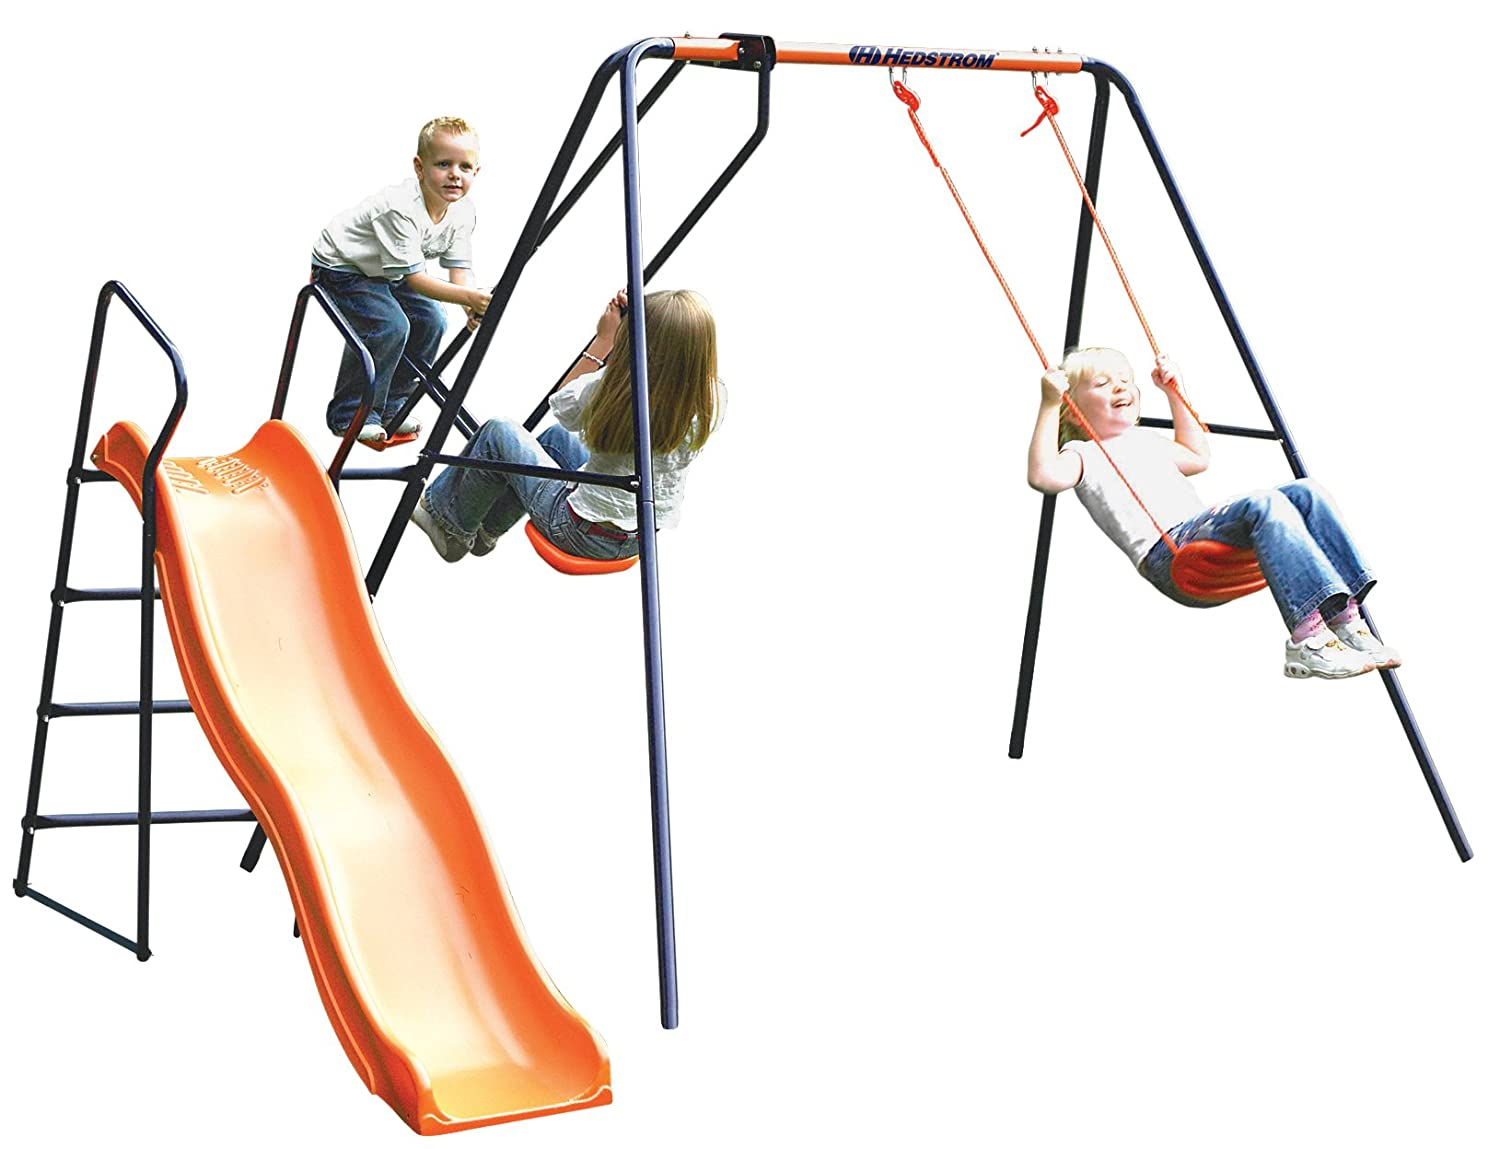 Hedstrom Saturn Multiplay including Slide Chute M08612 Outdoor_and_Sports_Toys Seasonal Summer Toys Sports Toys Other